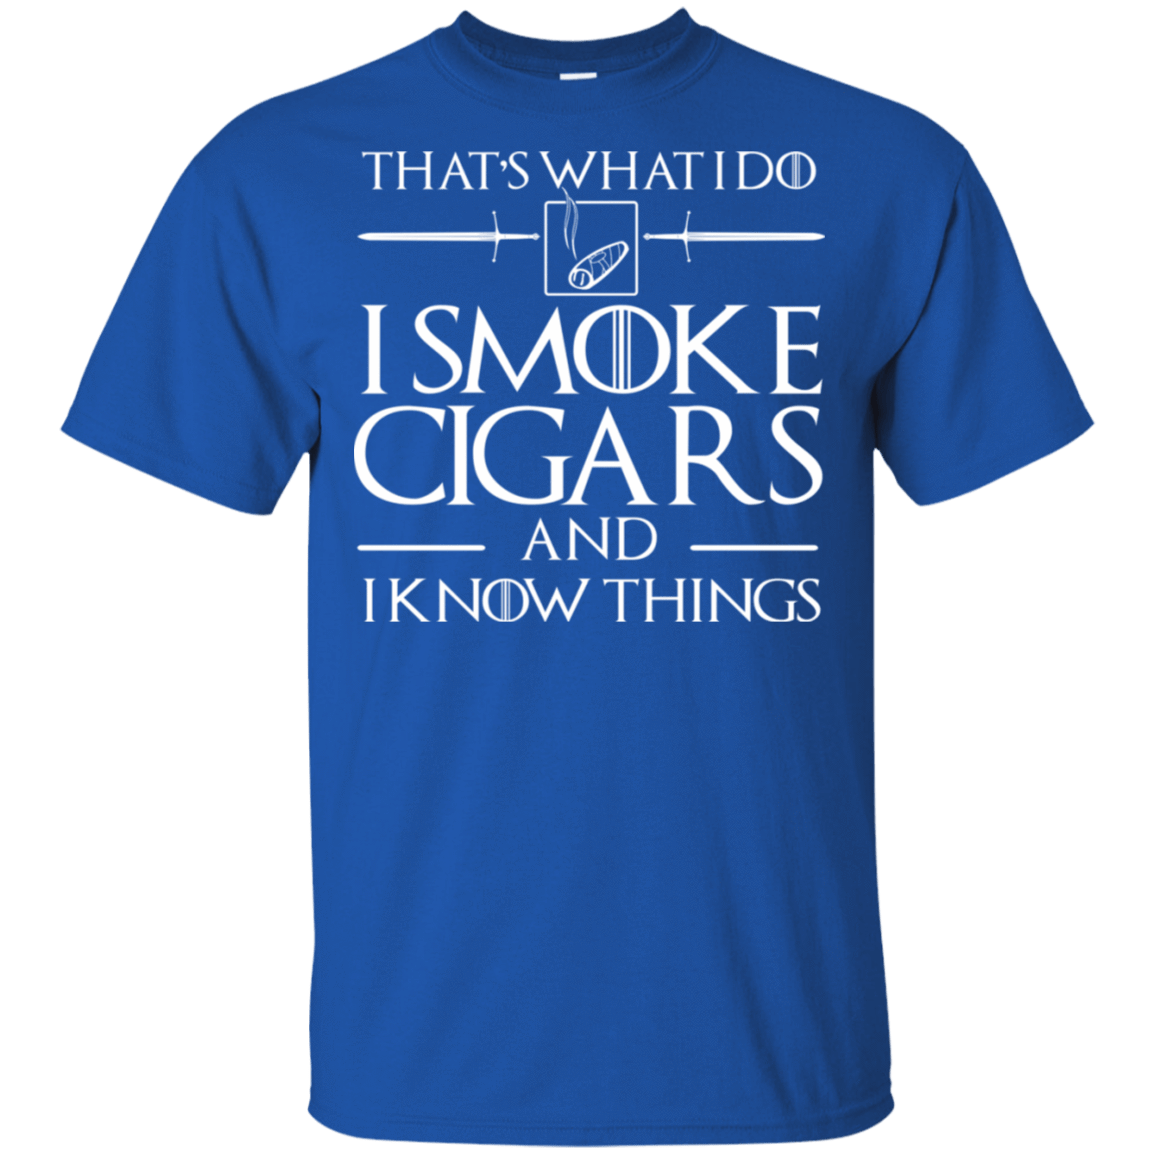 That's What I Do I Smoke Cigars And I Know Things 22-110-73425239-249 - Tee Ript